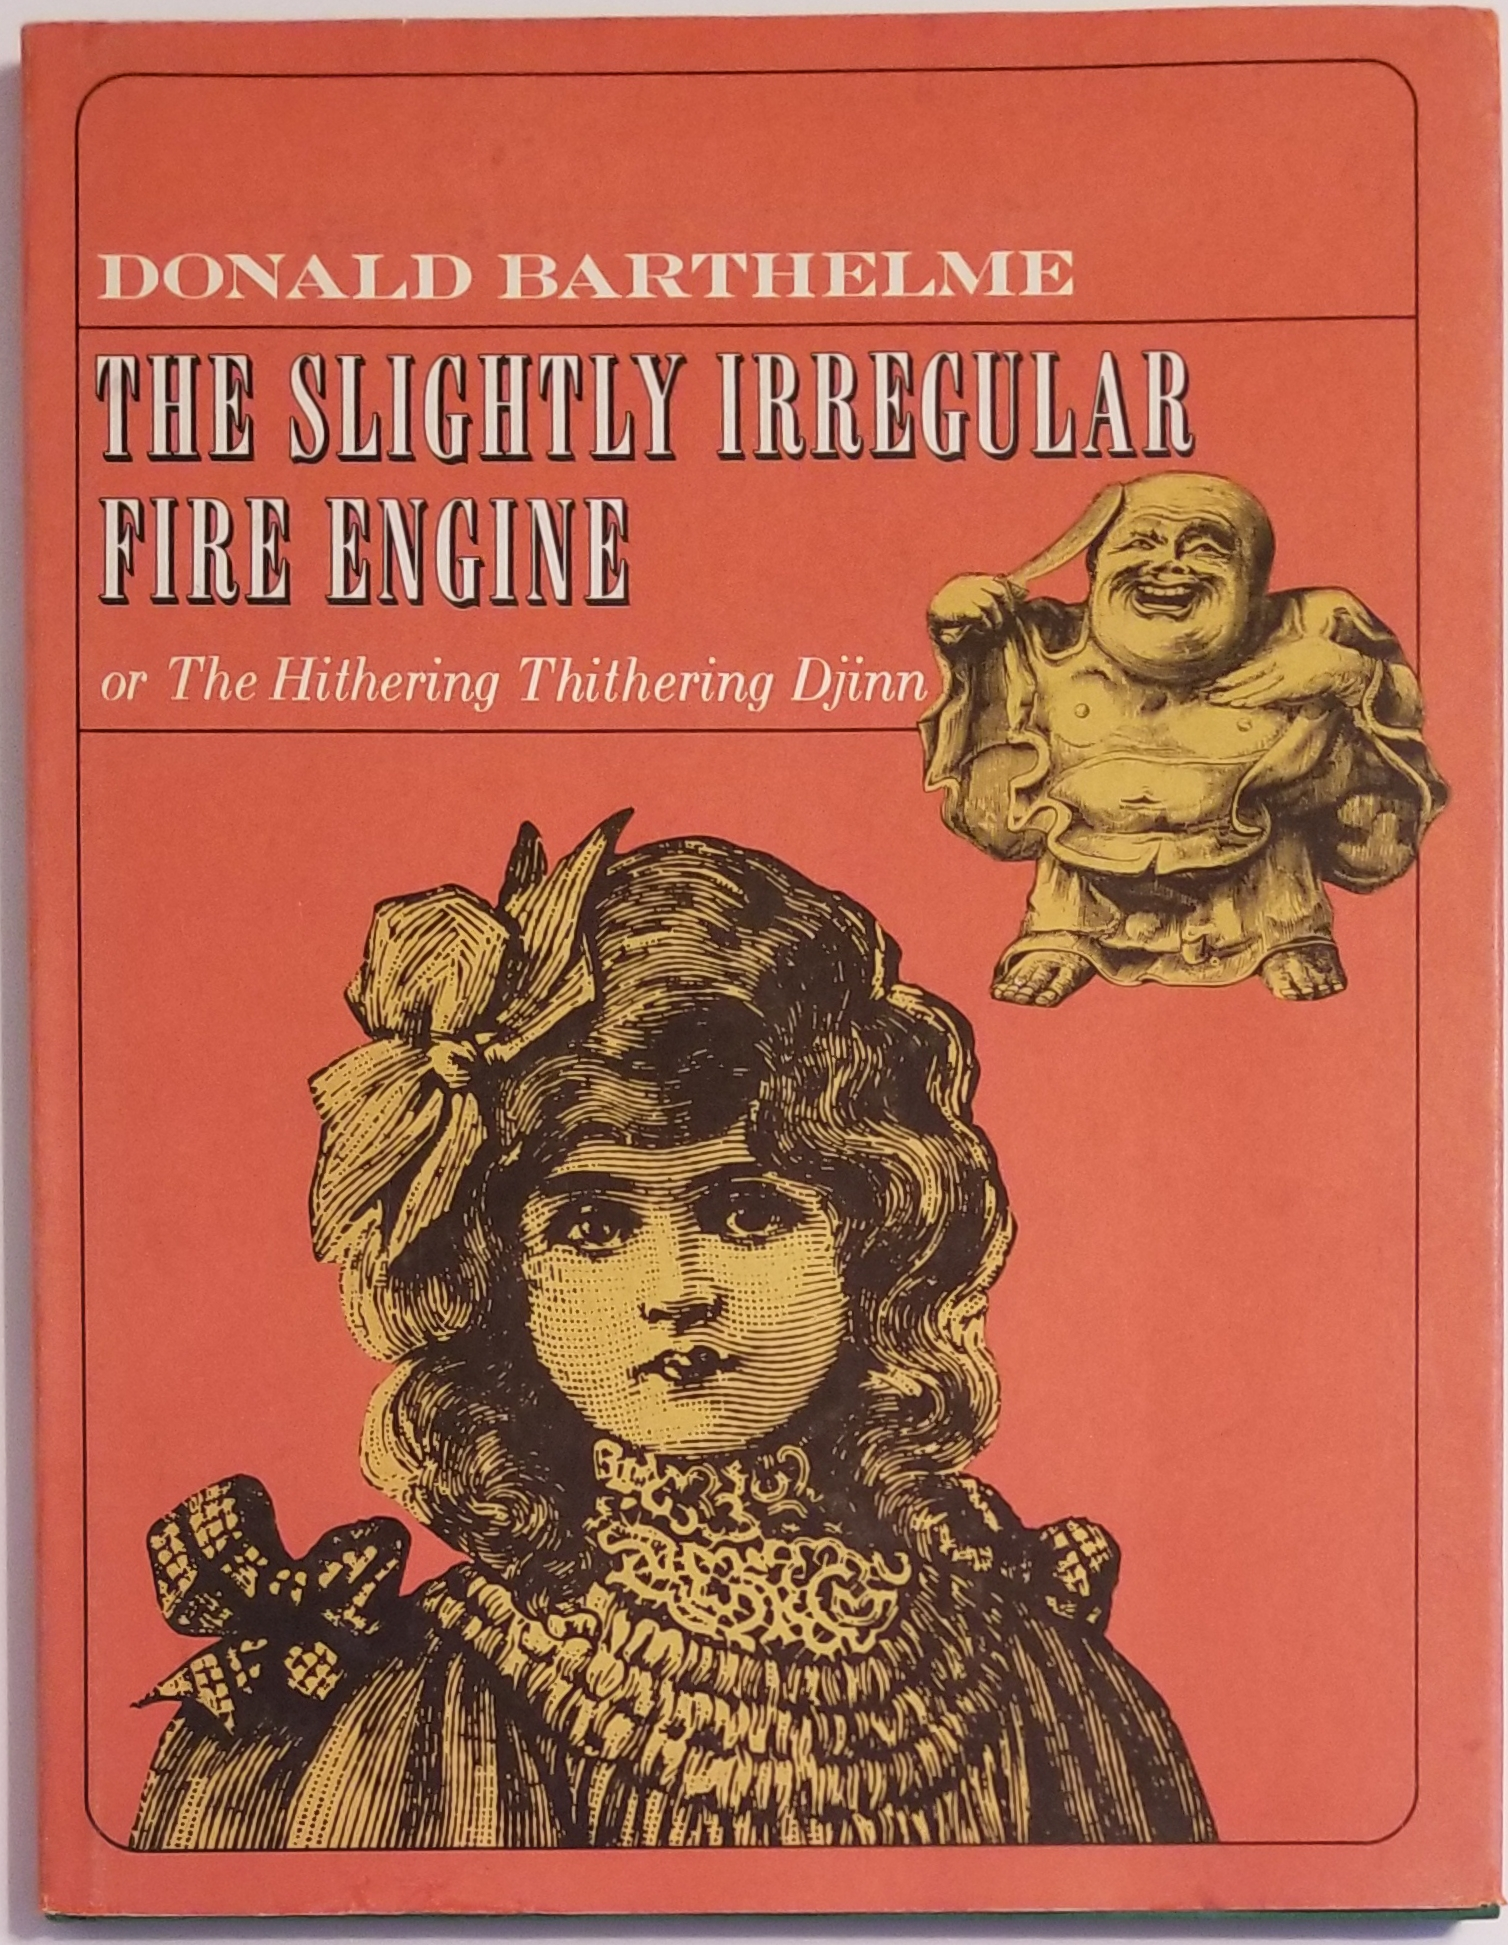 THE SLIGHTLY IRREGULAR FIRE ENGINE or The Hithering Thithering Djinn. Donald Barthelme.